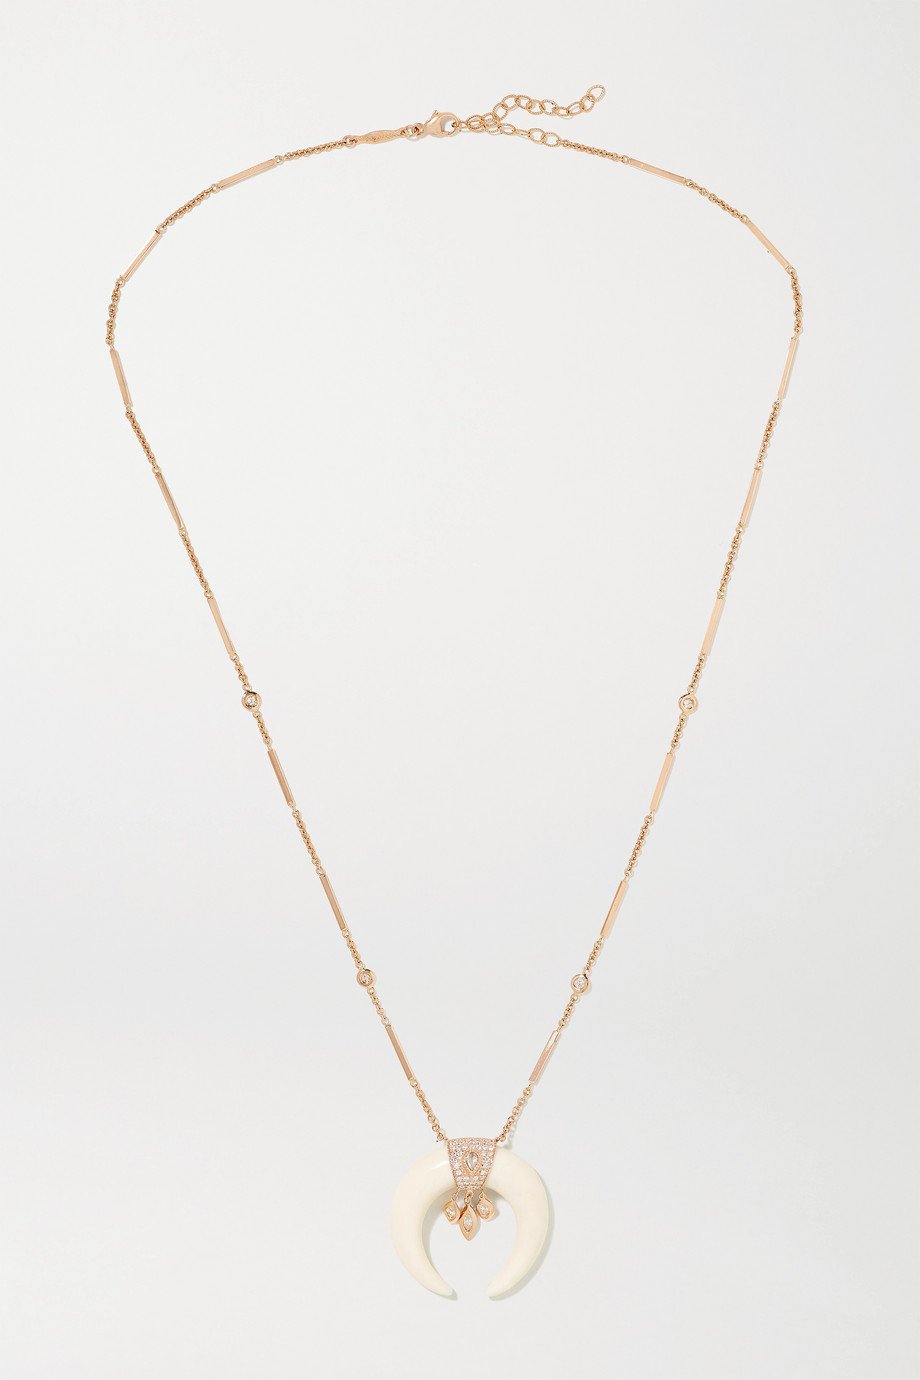 JACQUIE AICHE Double Horn 14-karat rose gold, bone and diamond necklace